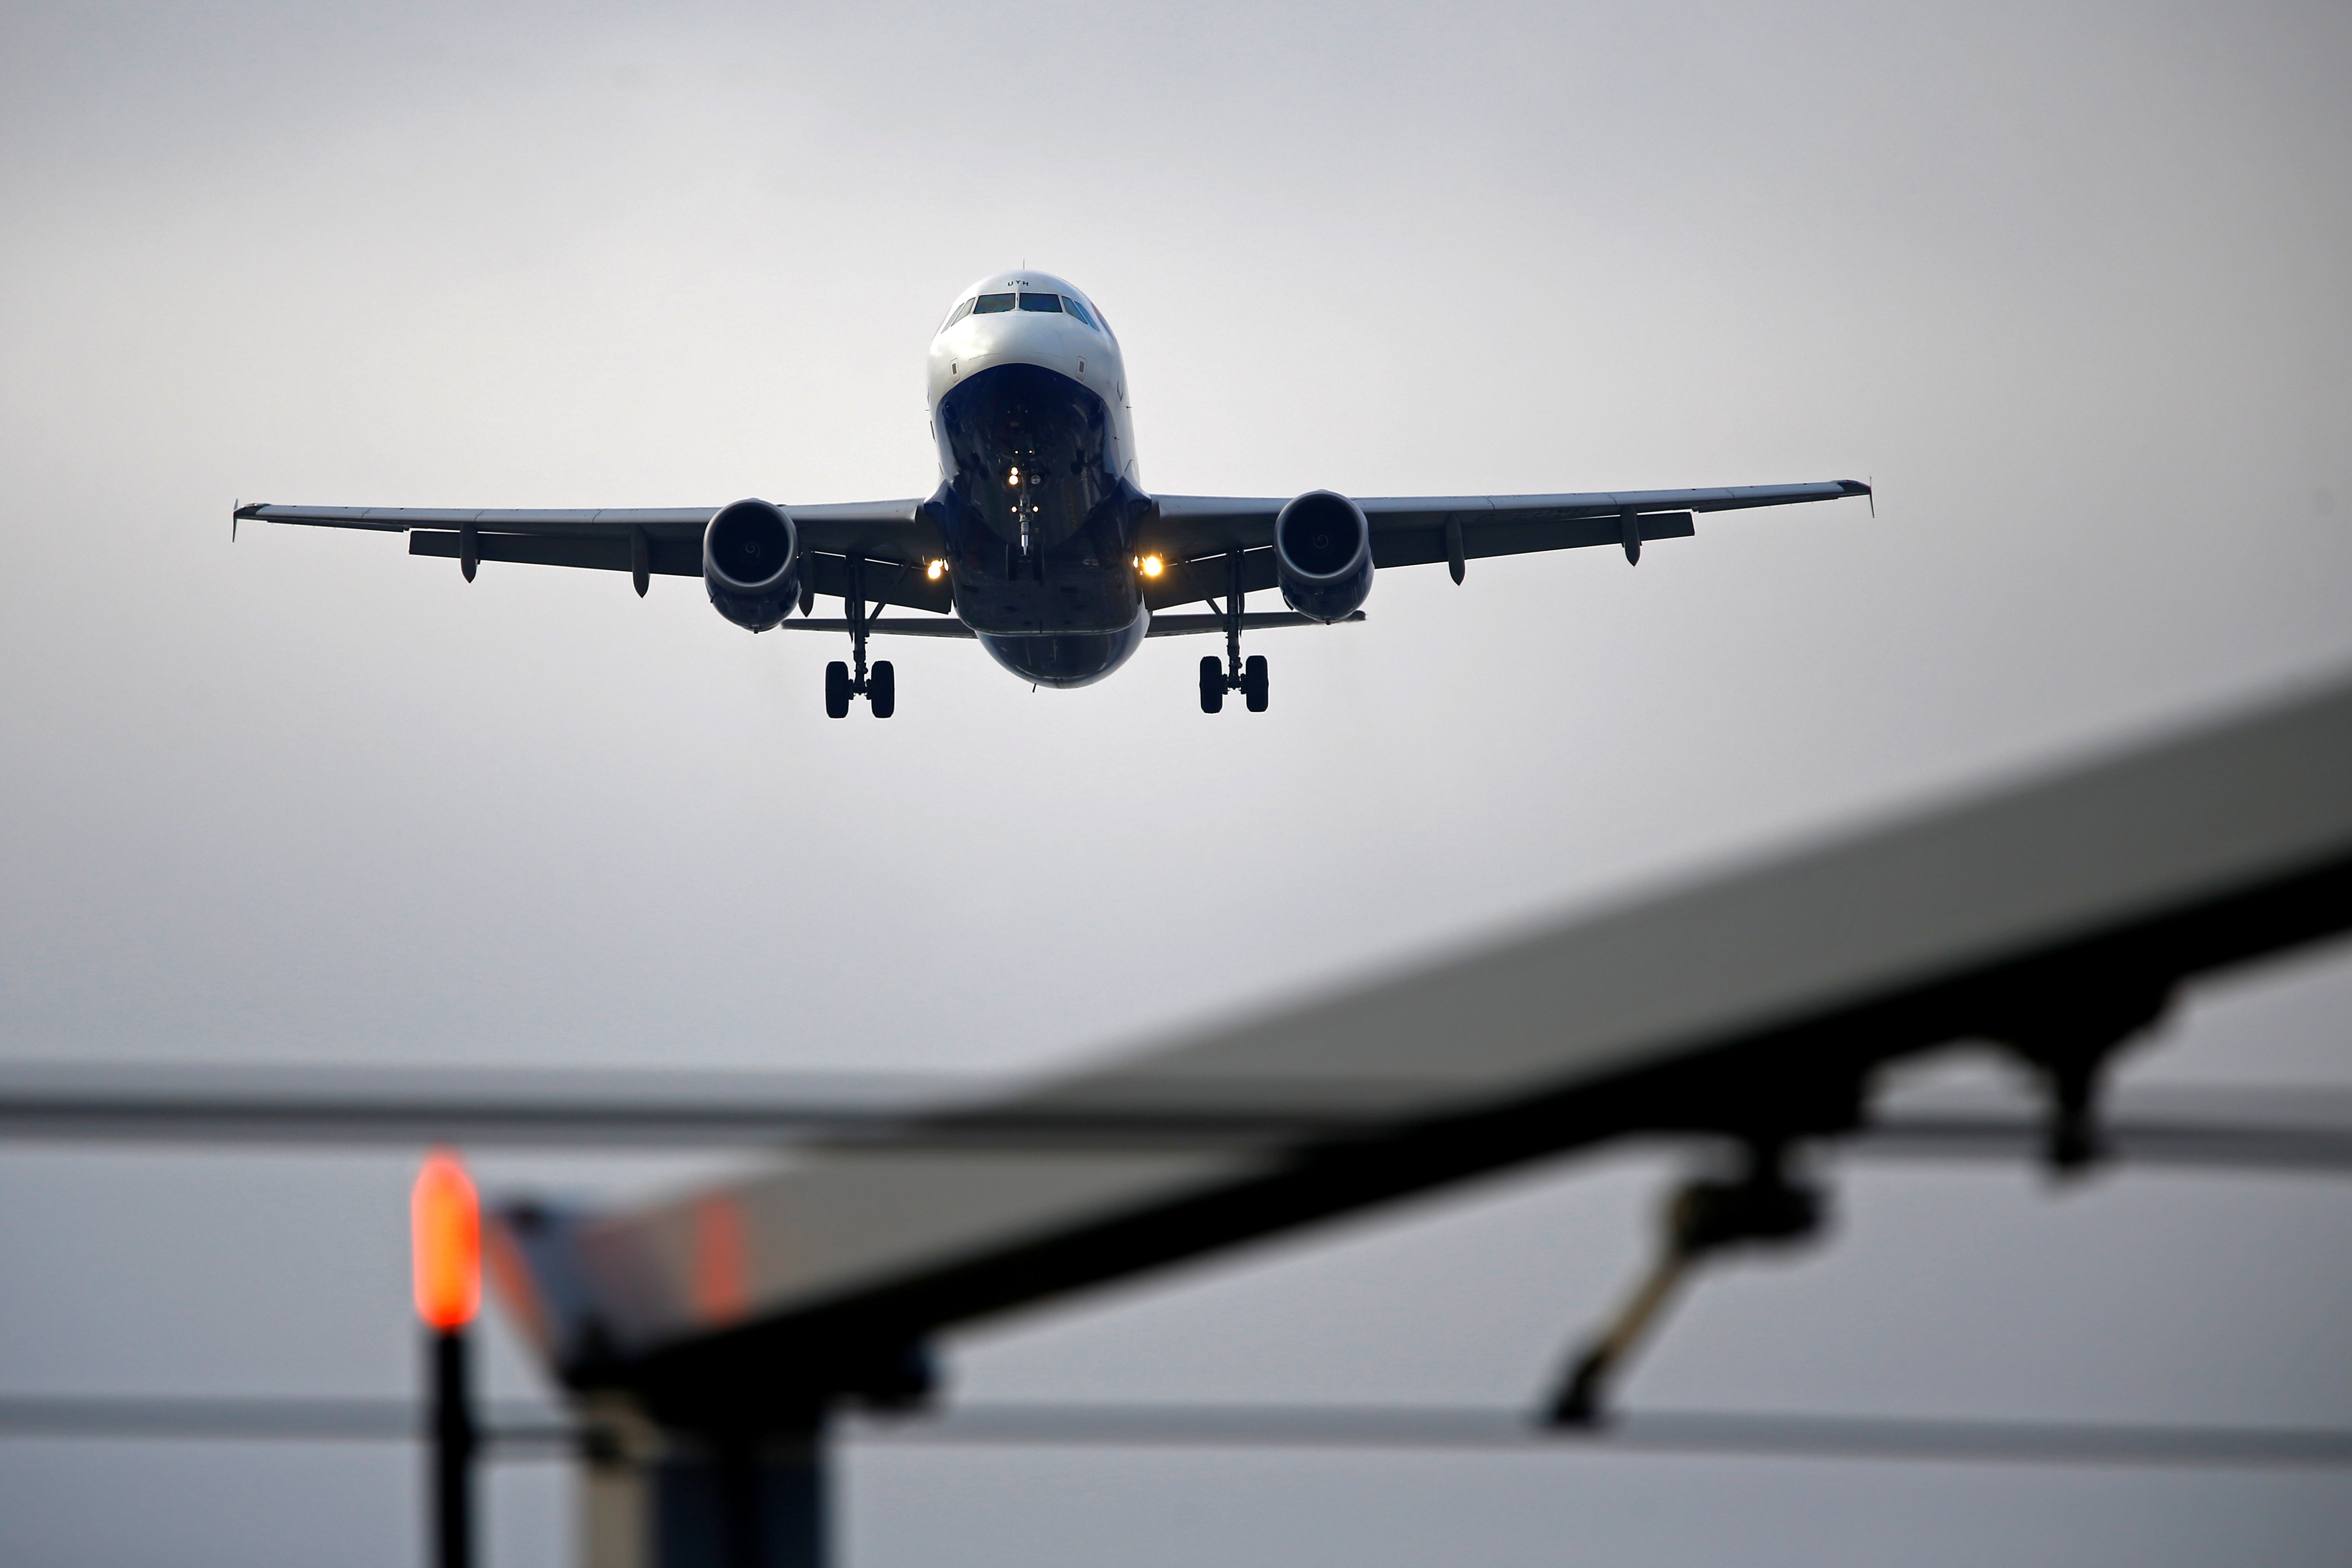 An airplane prepares to land at Cointrin airport in Geneva, Switzerland December 5, 2017. REUTERS/Pierre Albouy/File Photo